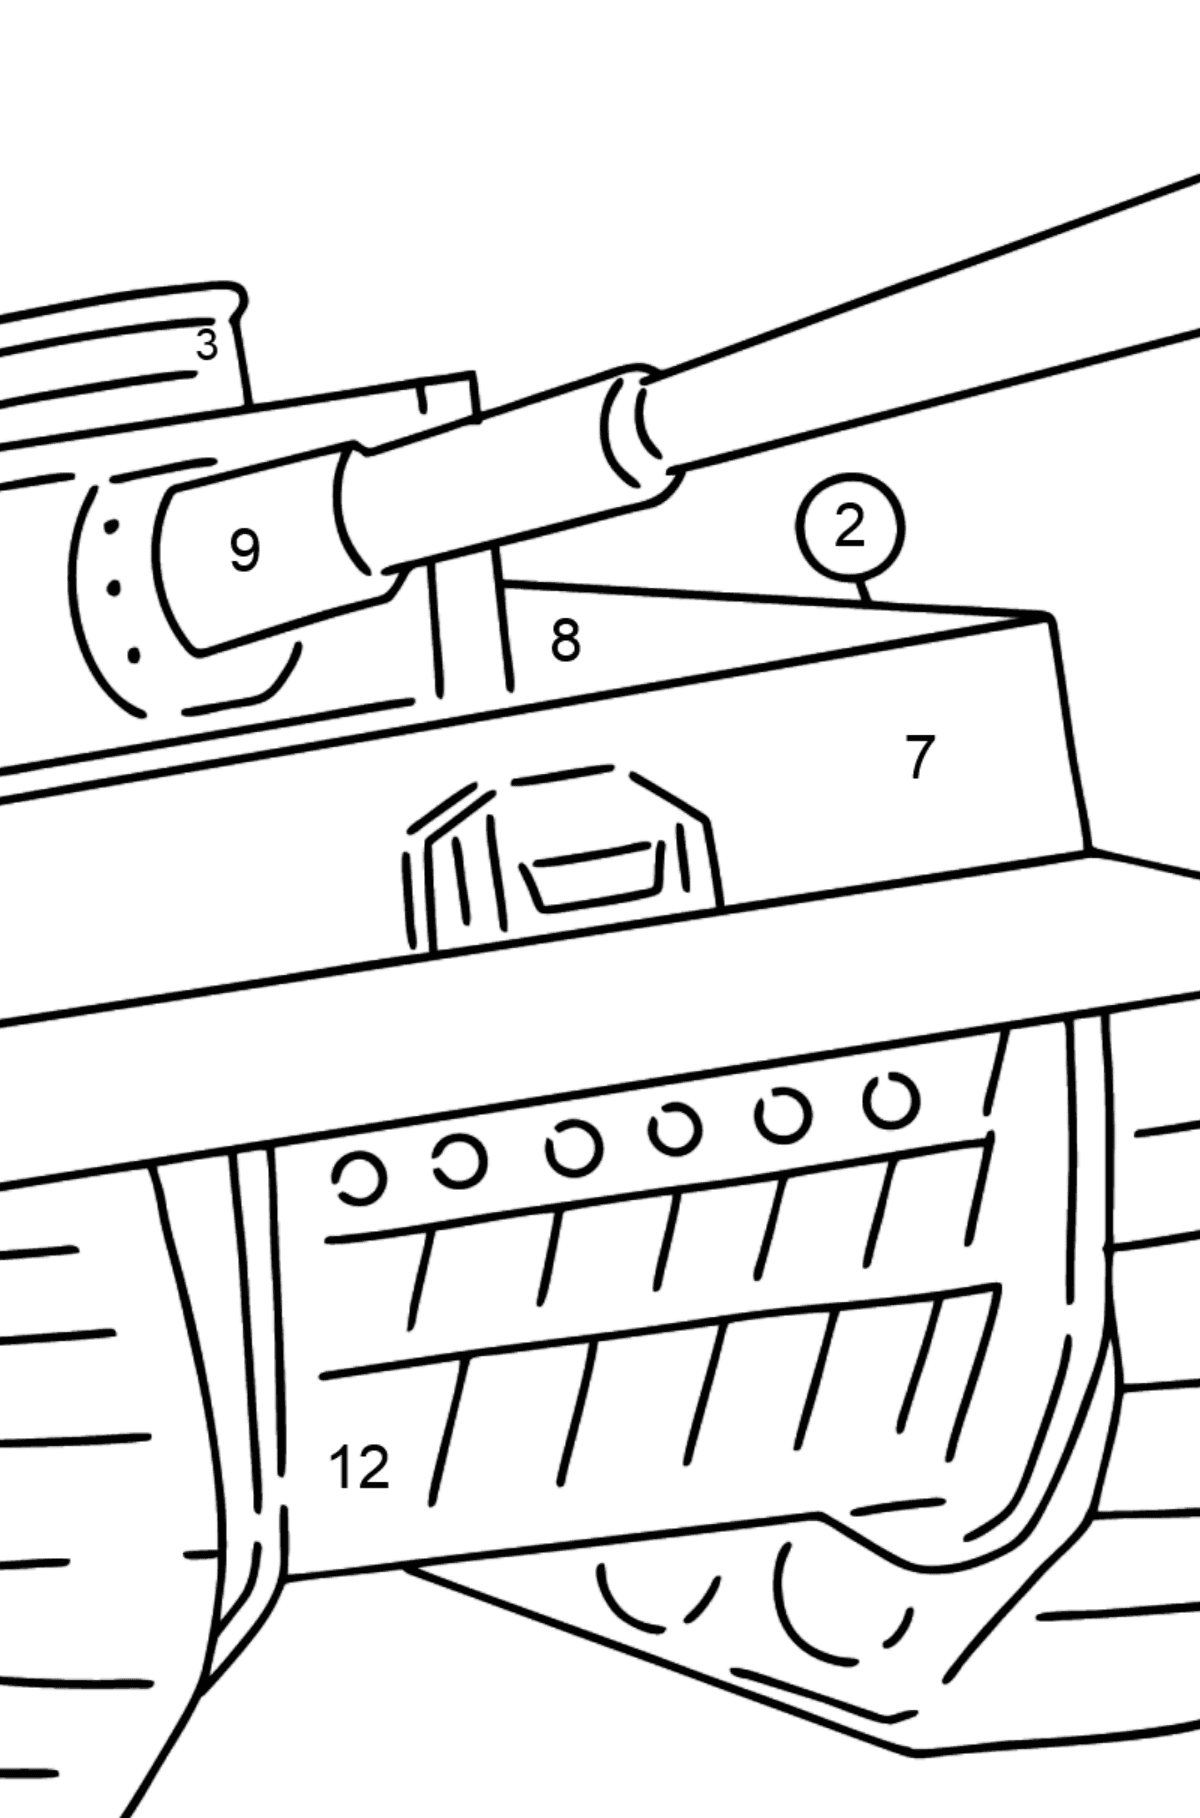 Tank Panther coloring page - Coloring by Numbers for Kids